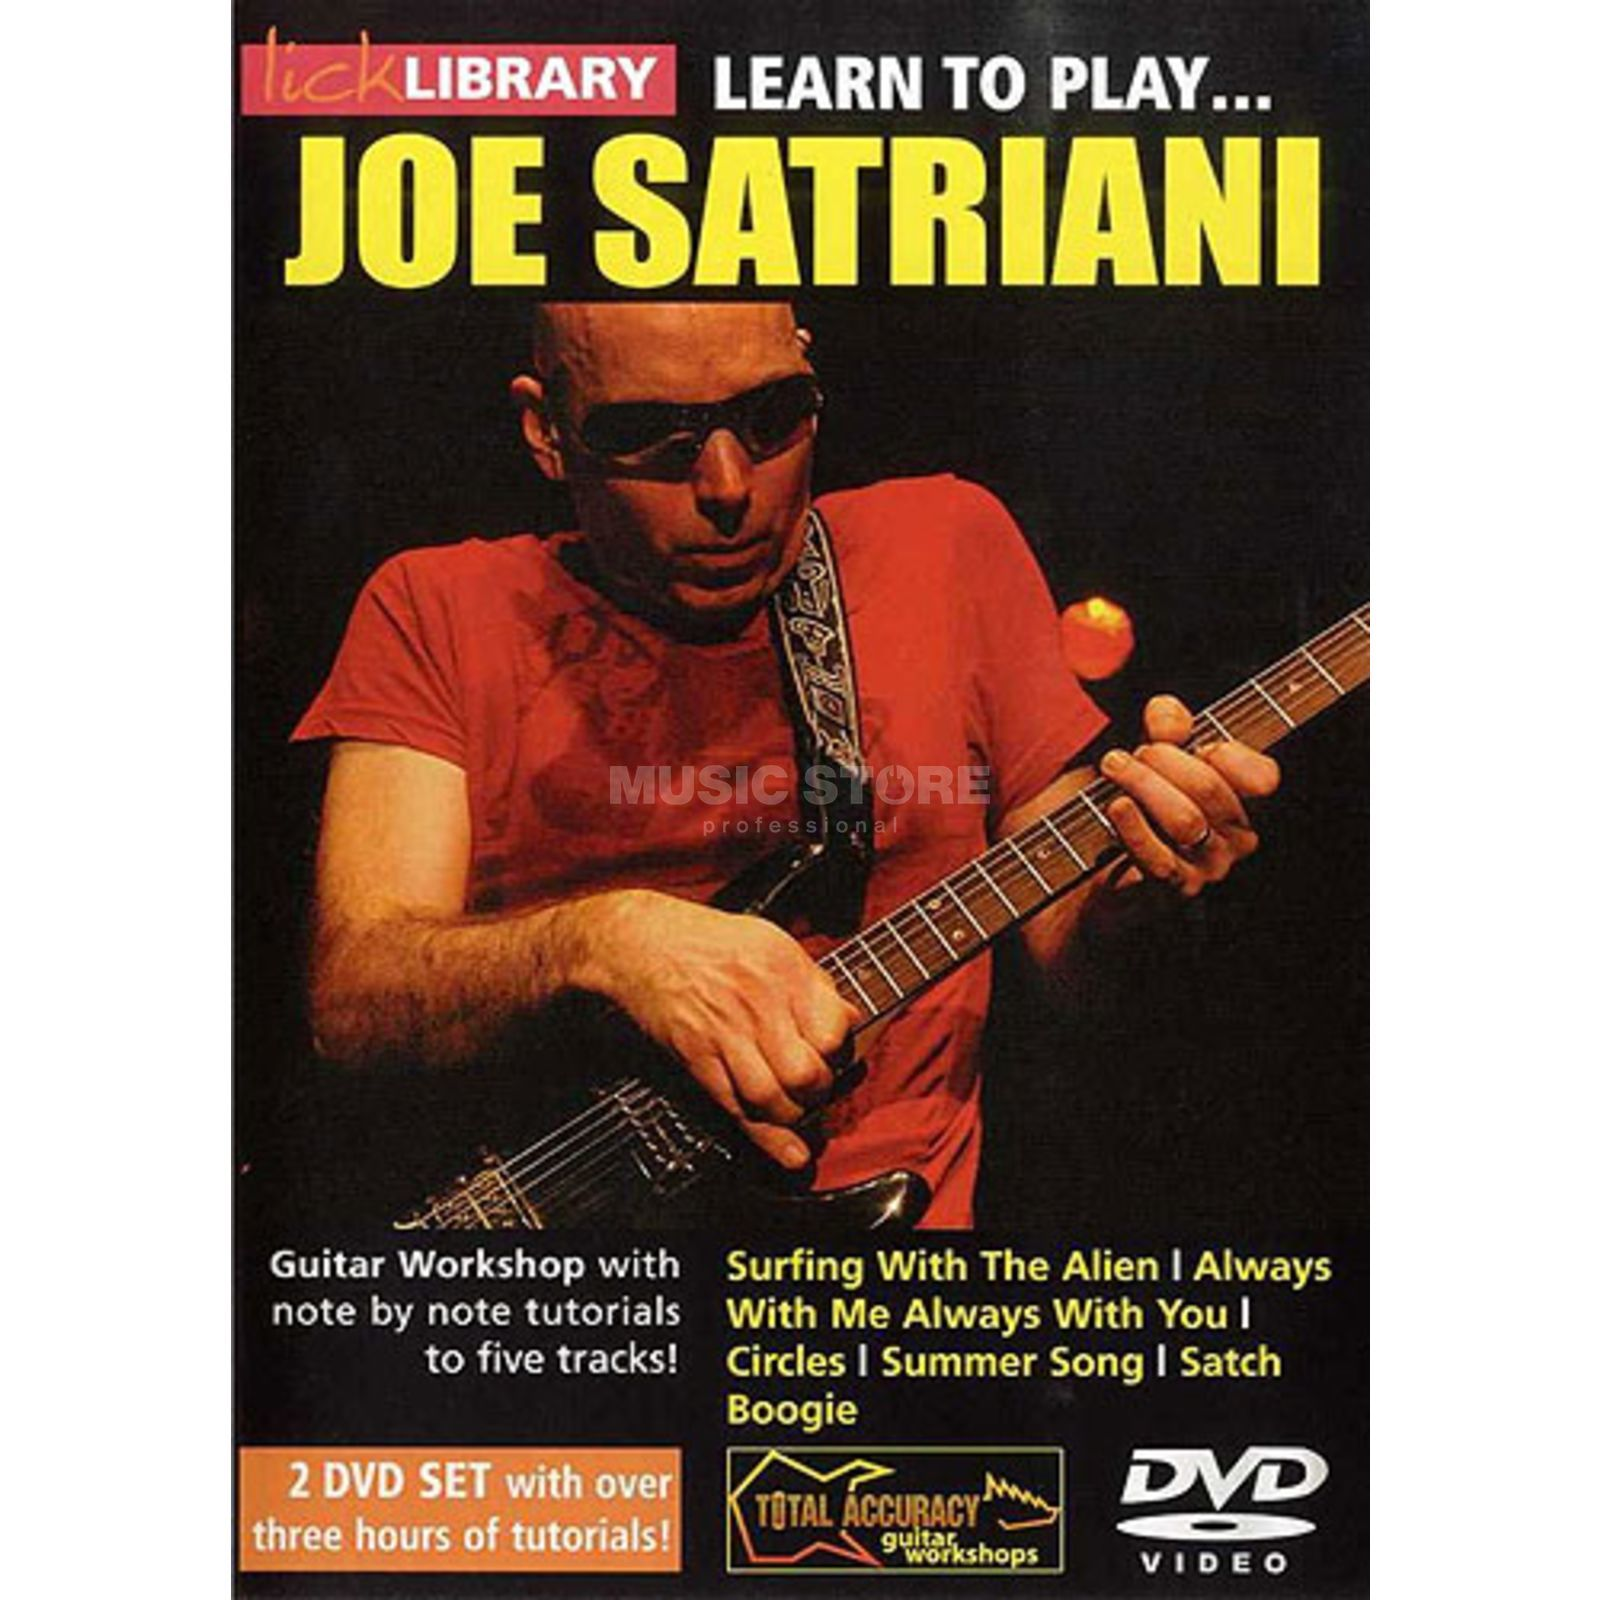 Roadrock International  Lick Library: Learn To Play Joe Satriani DVD Produktbild